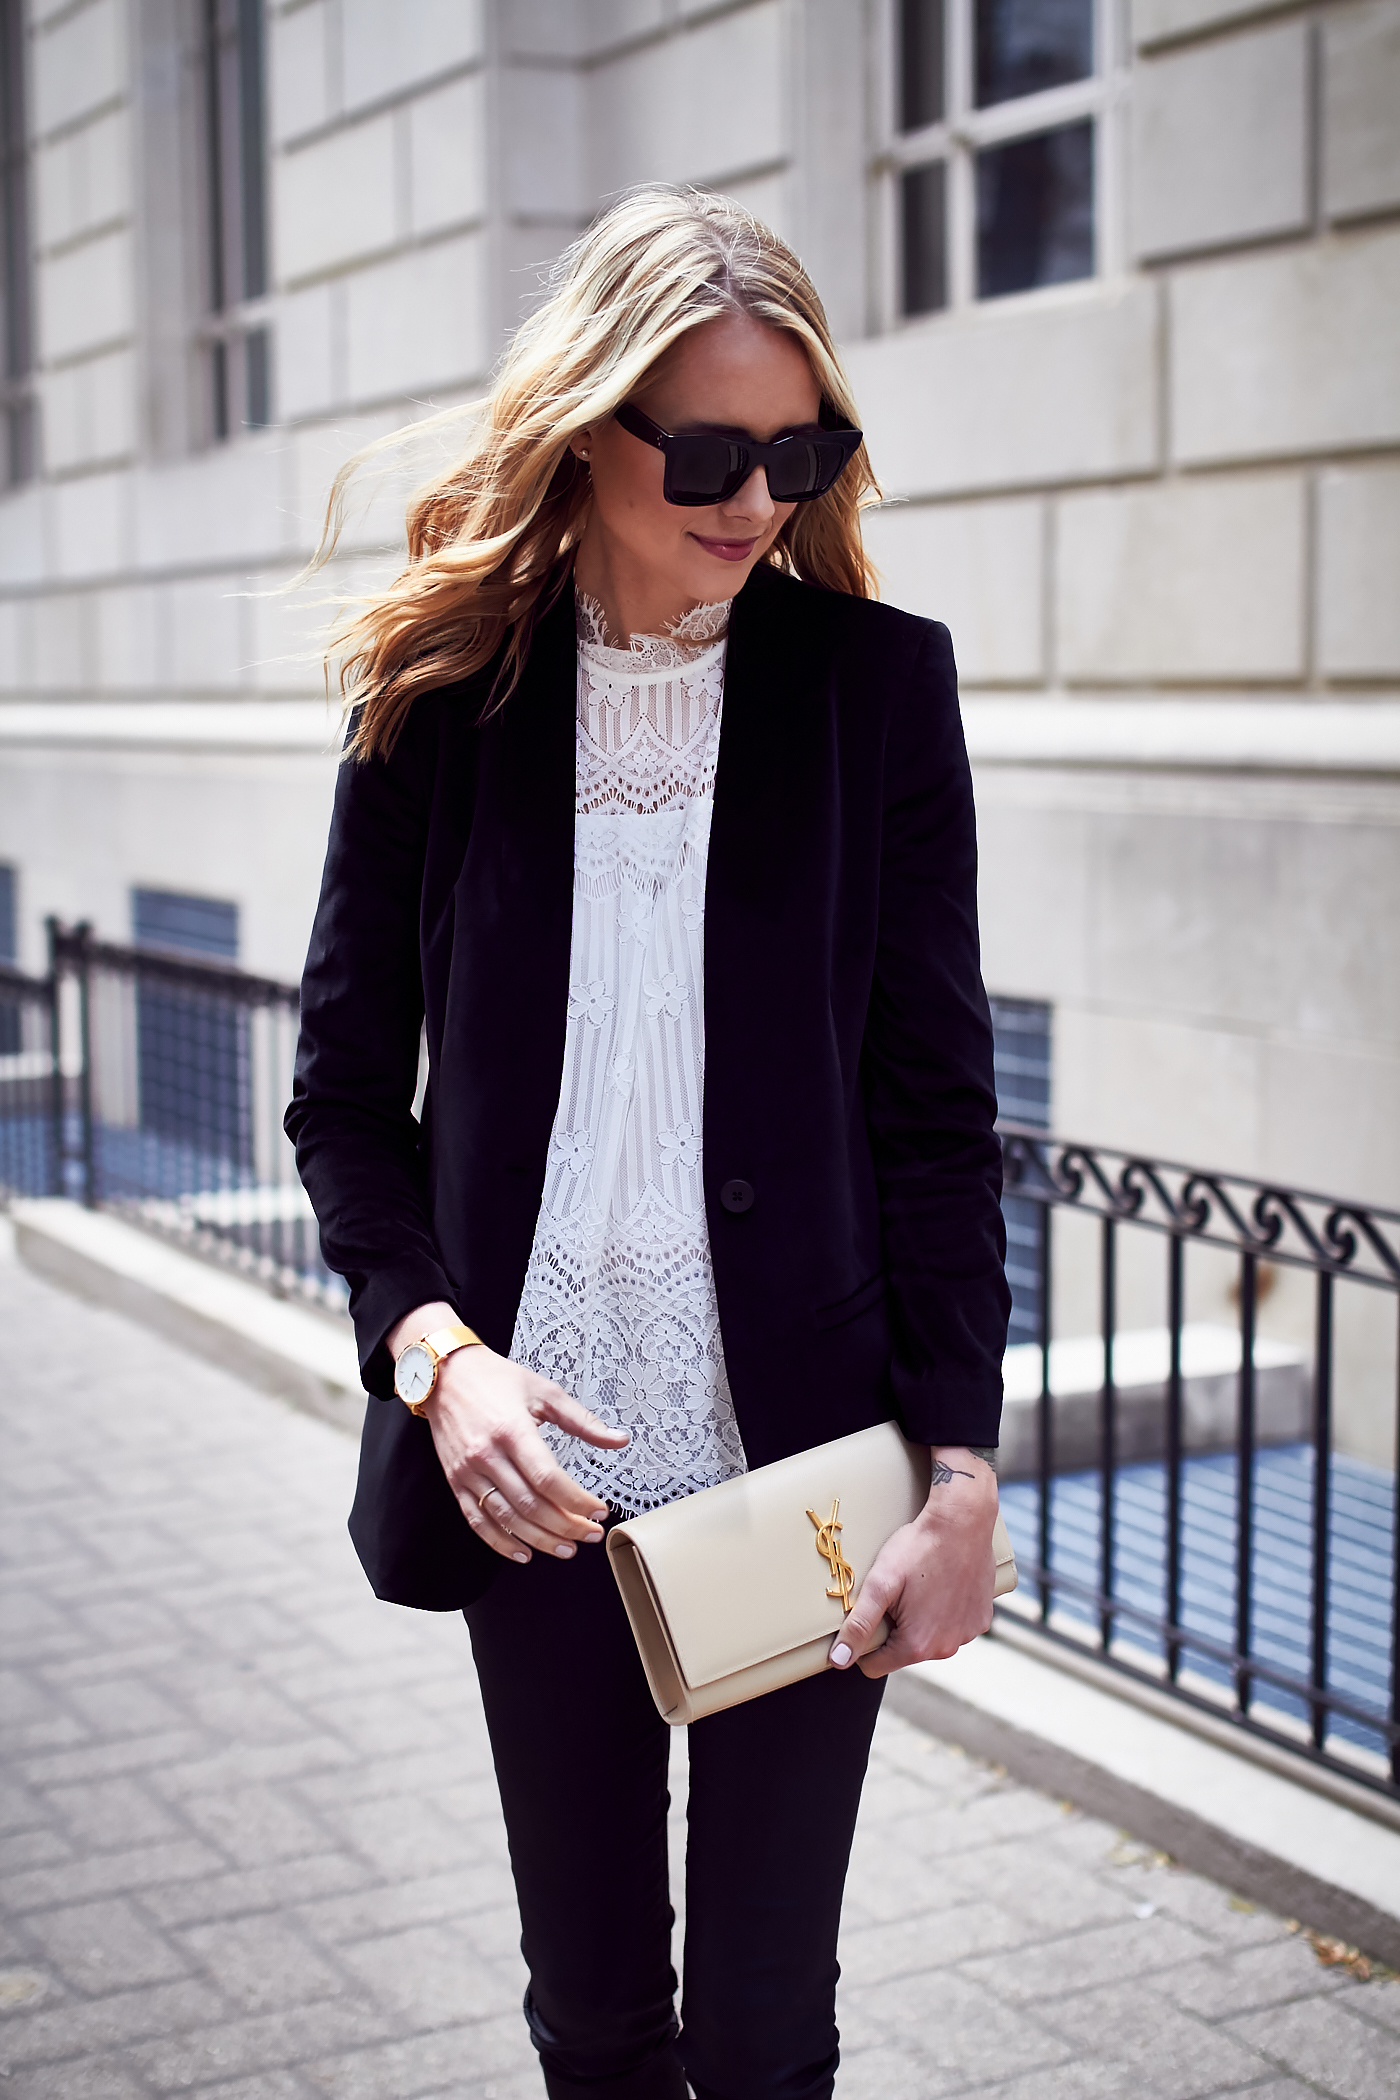 Fall Outfit, Holiday Outfit, White Lace Top, Black Velvet Blazer, Saint Laurent Clutch, Black Celine Sunglasses